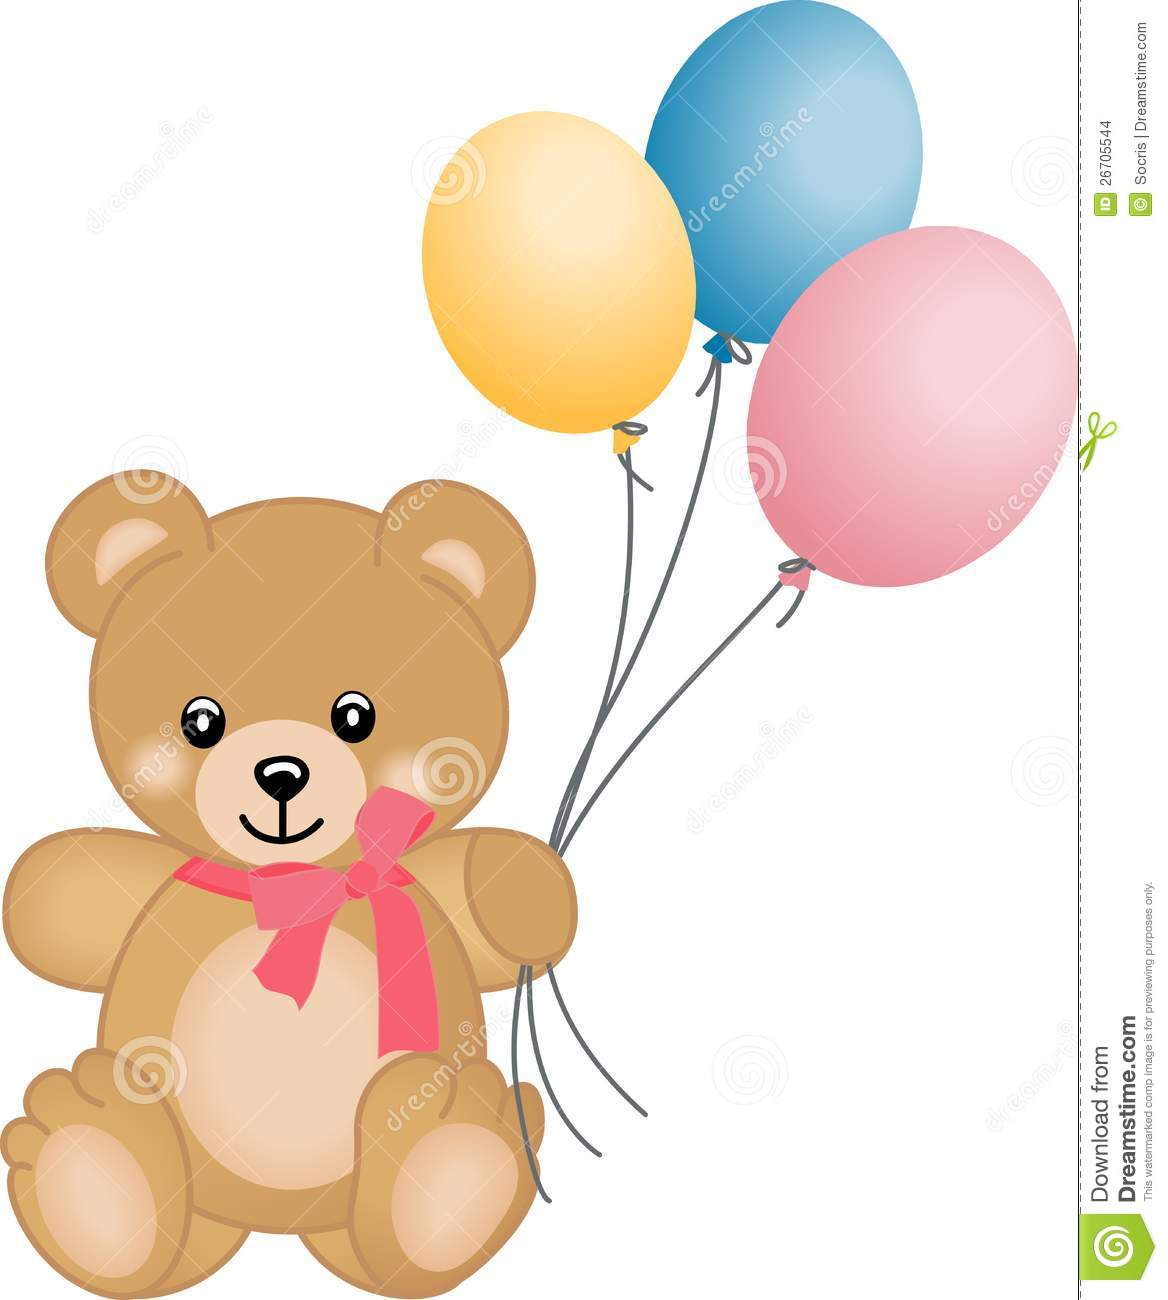 ... representing a cute teddy bear flying balloons, isolated on white